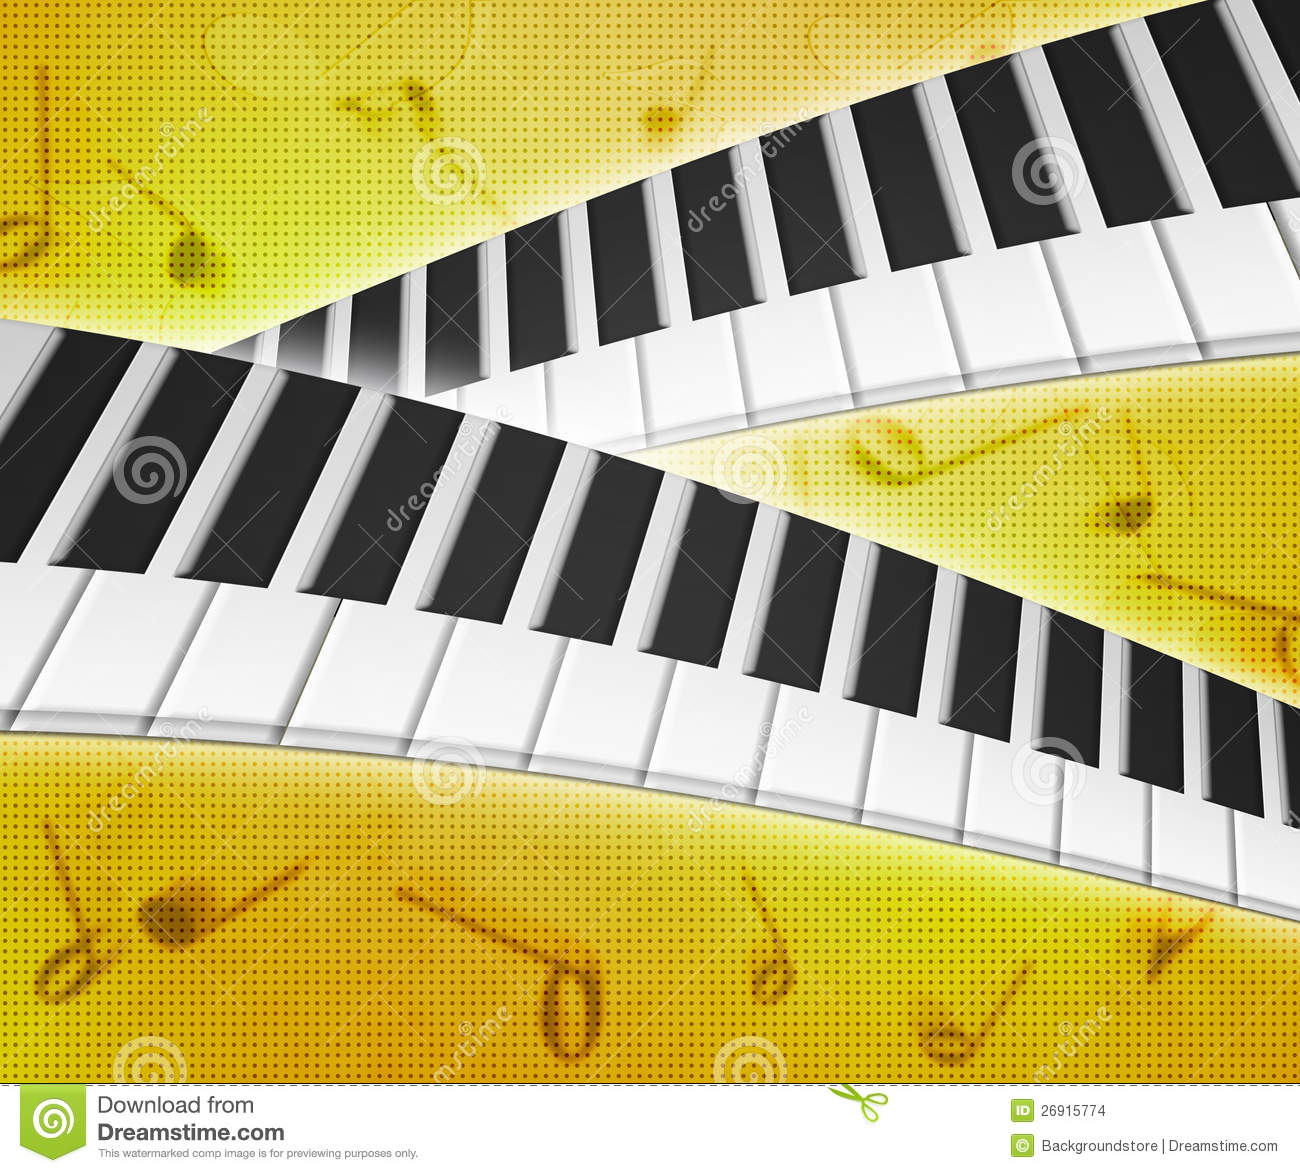 Piano Background Music: Piano Keys Music Background Texture Stock Images